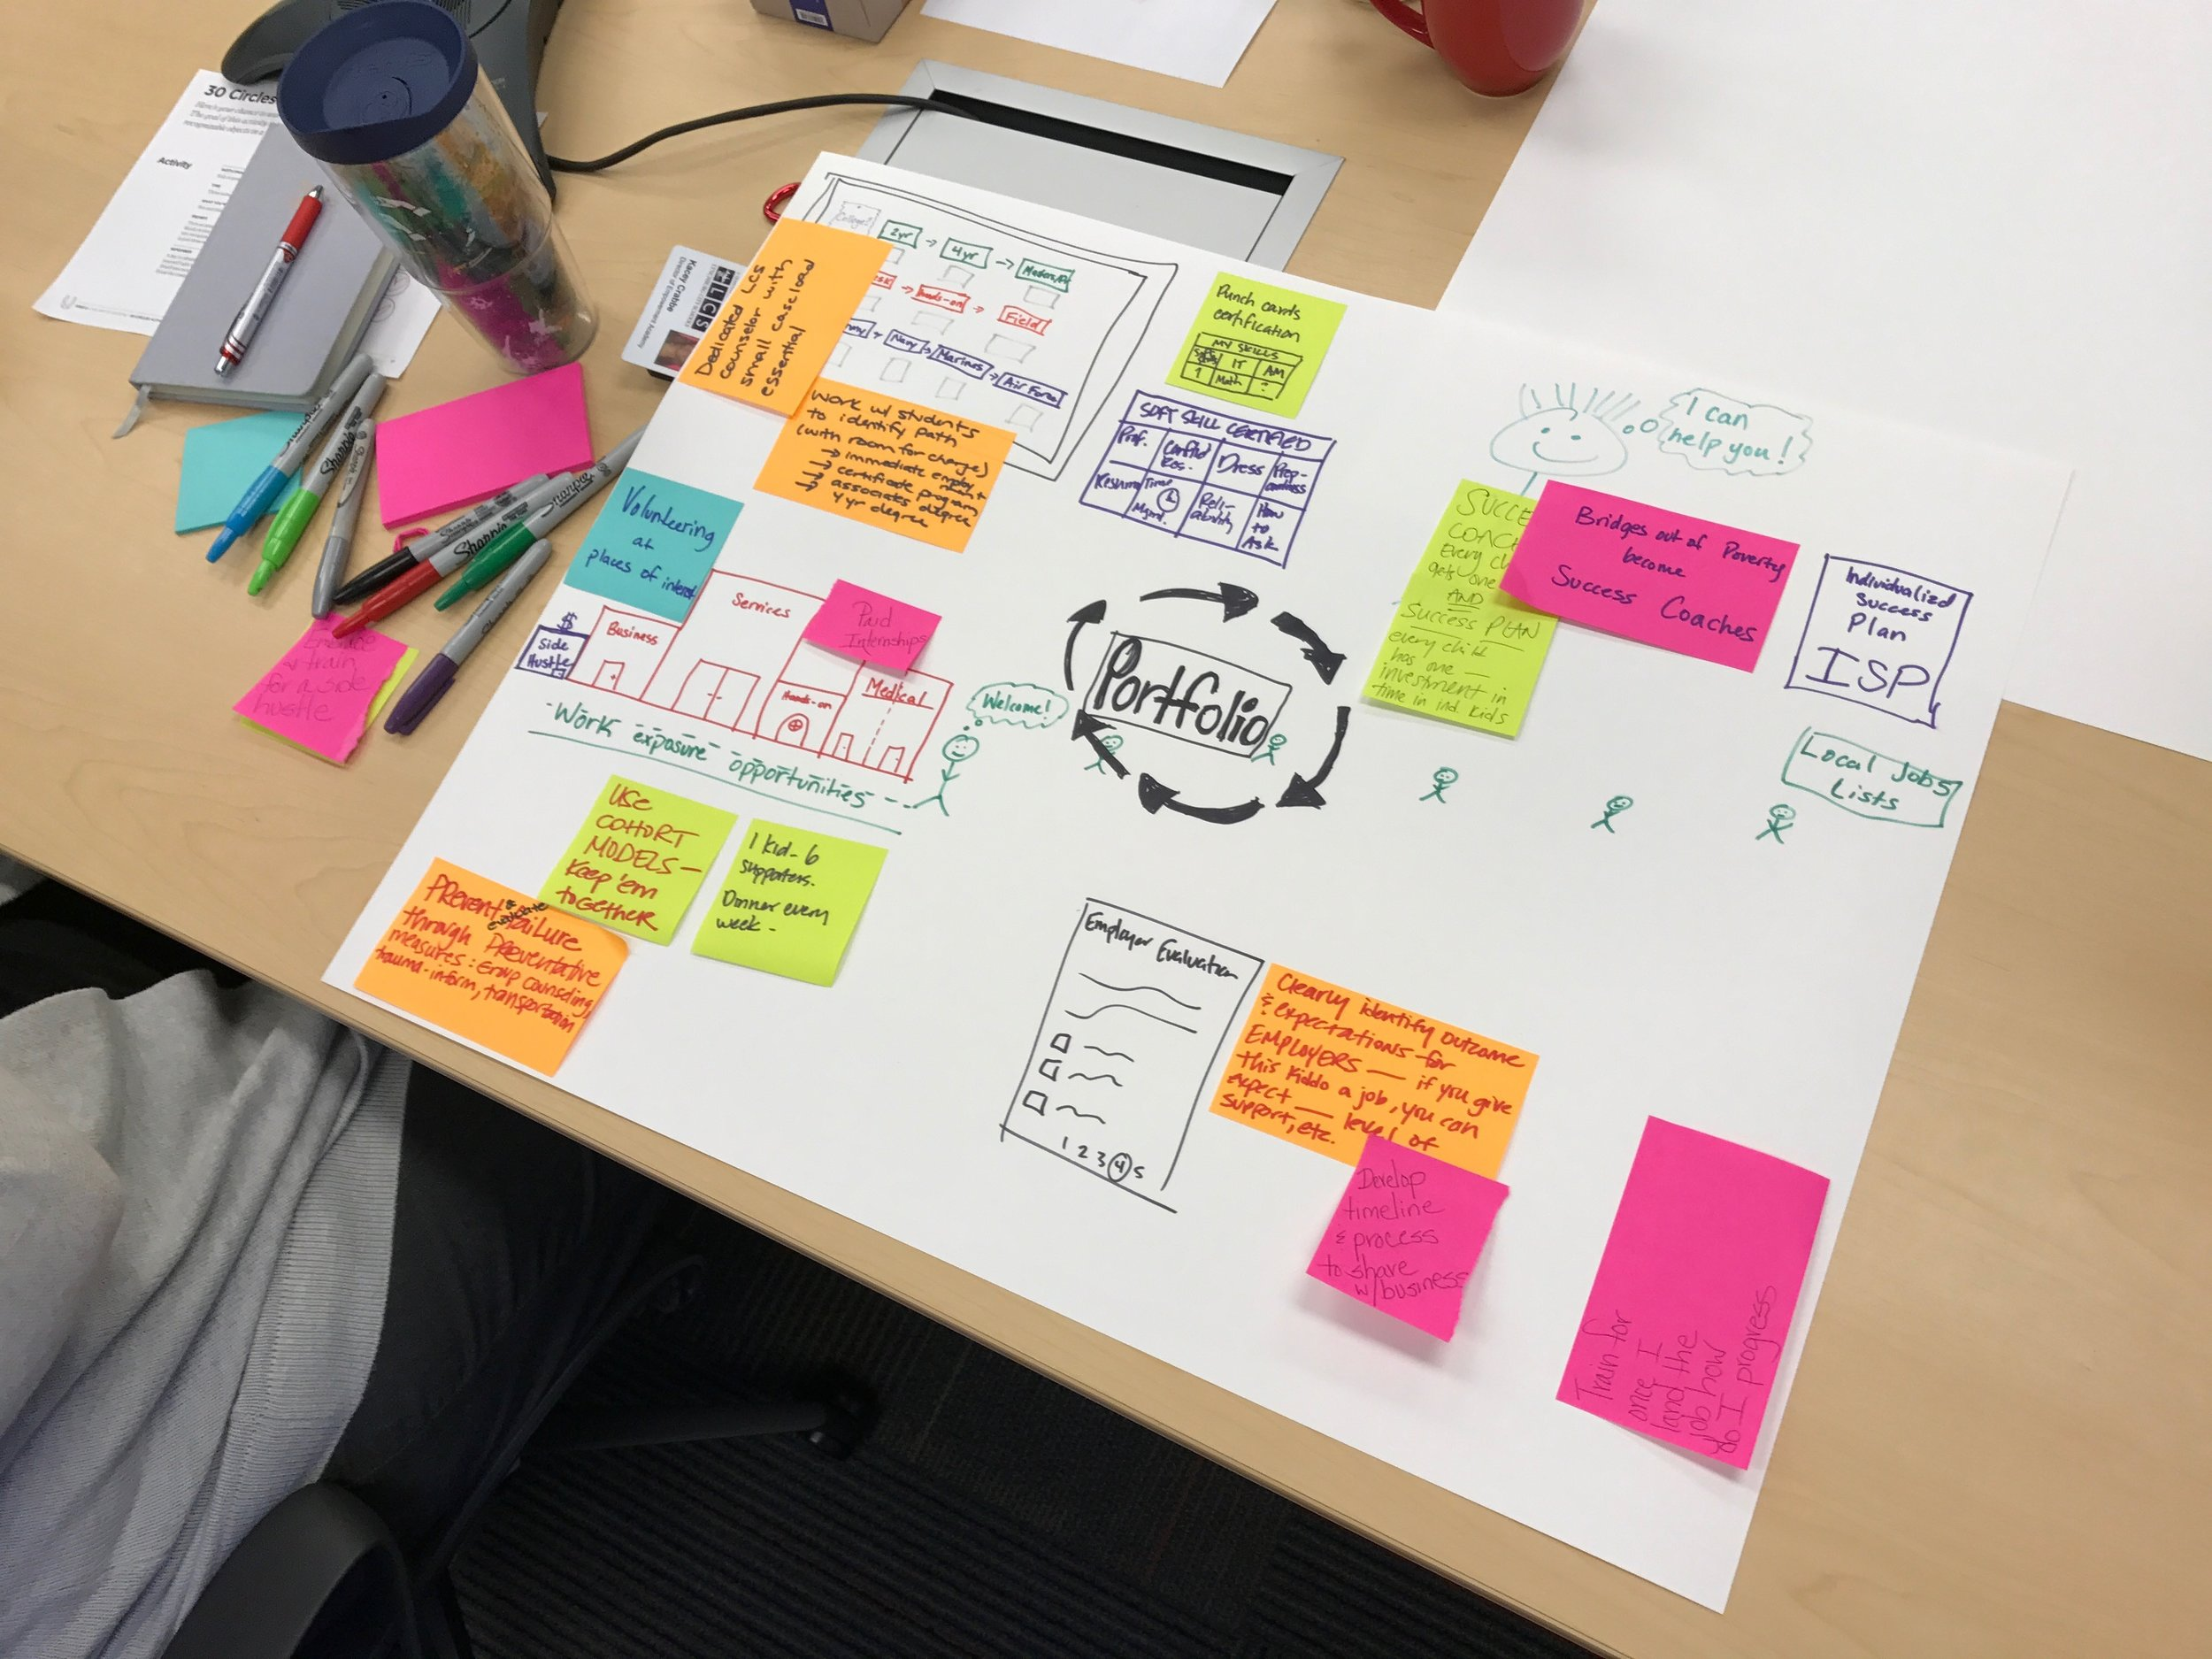 Rapid Prototyping - From trash pickup to risk management, every process tells a story. Prototyping is a way to bring that story to life and generate ideas for how provide a customer experience that simply works.Prototypes can come in the form of storyboards, mockups, role plays, or models. The main idea is to bring concepts to life, enough to solicit feedback from users. Cities Reimagined facilitates prototyping workshops to empower public servants with the skills to bring their ideas to life.